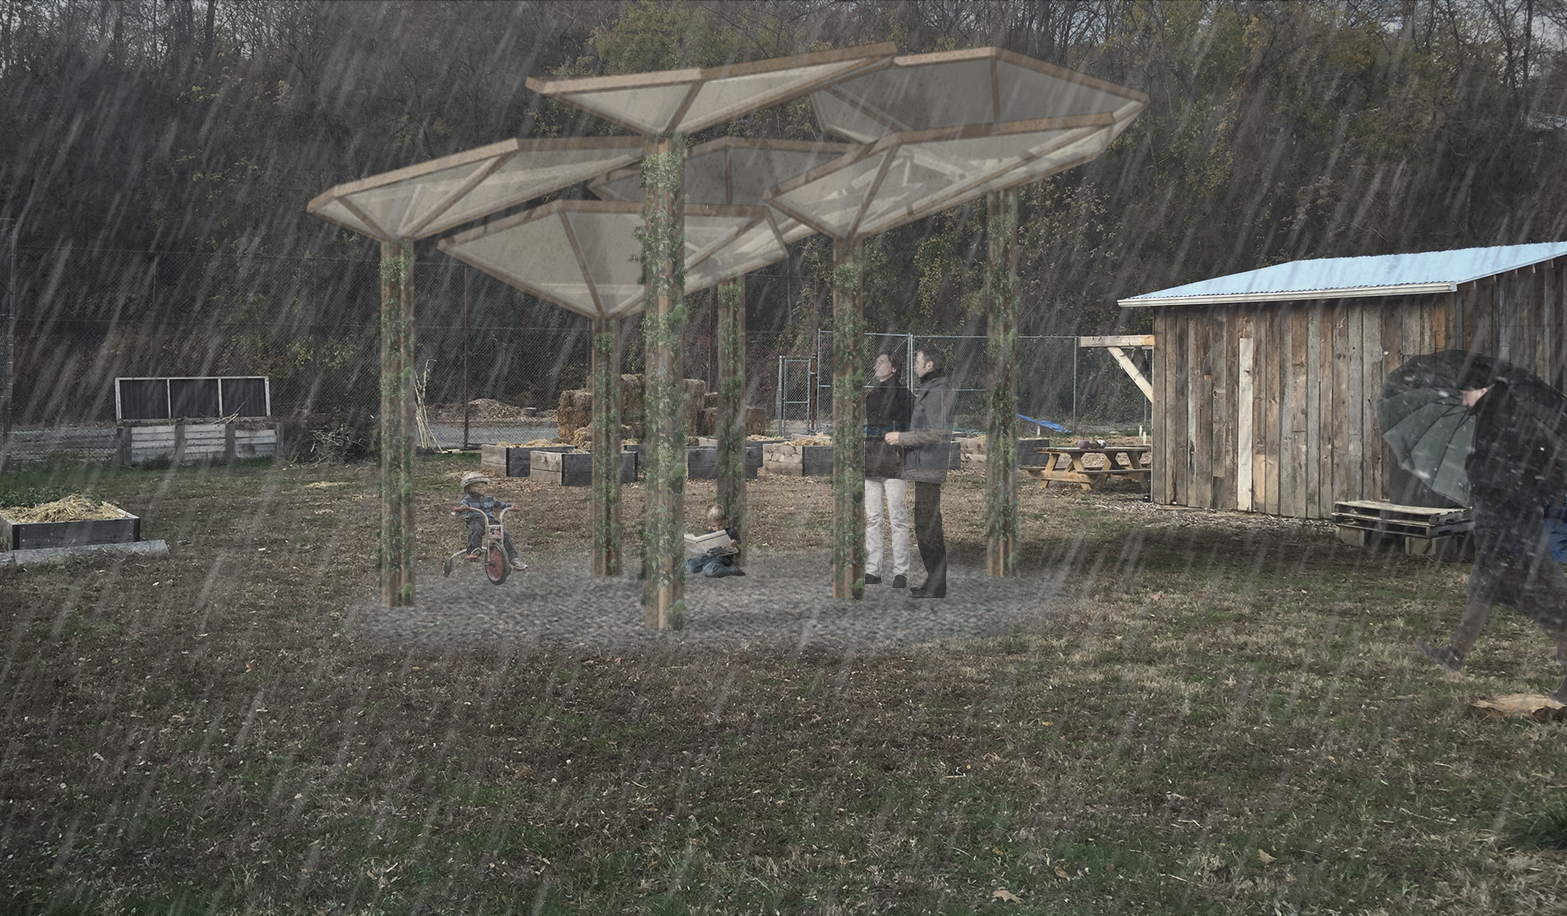 Aqua Pavilion   How can a low-cost modular system act as a learning tool?